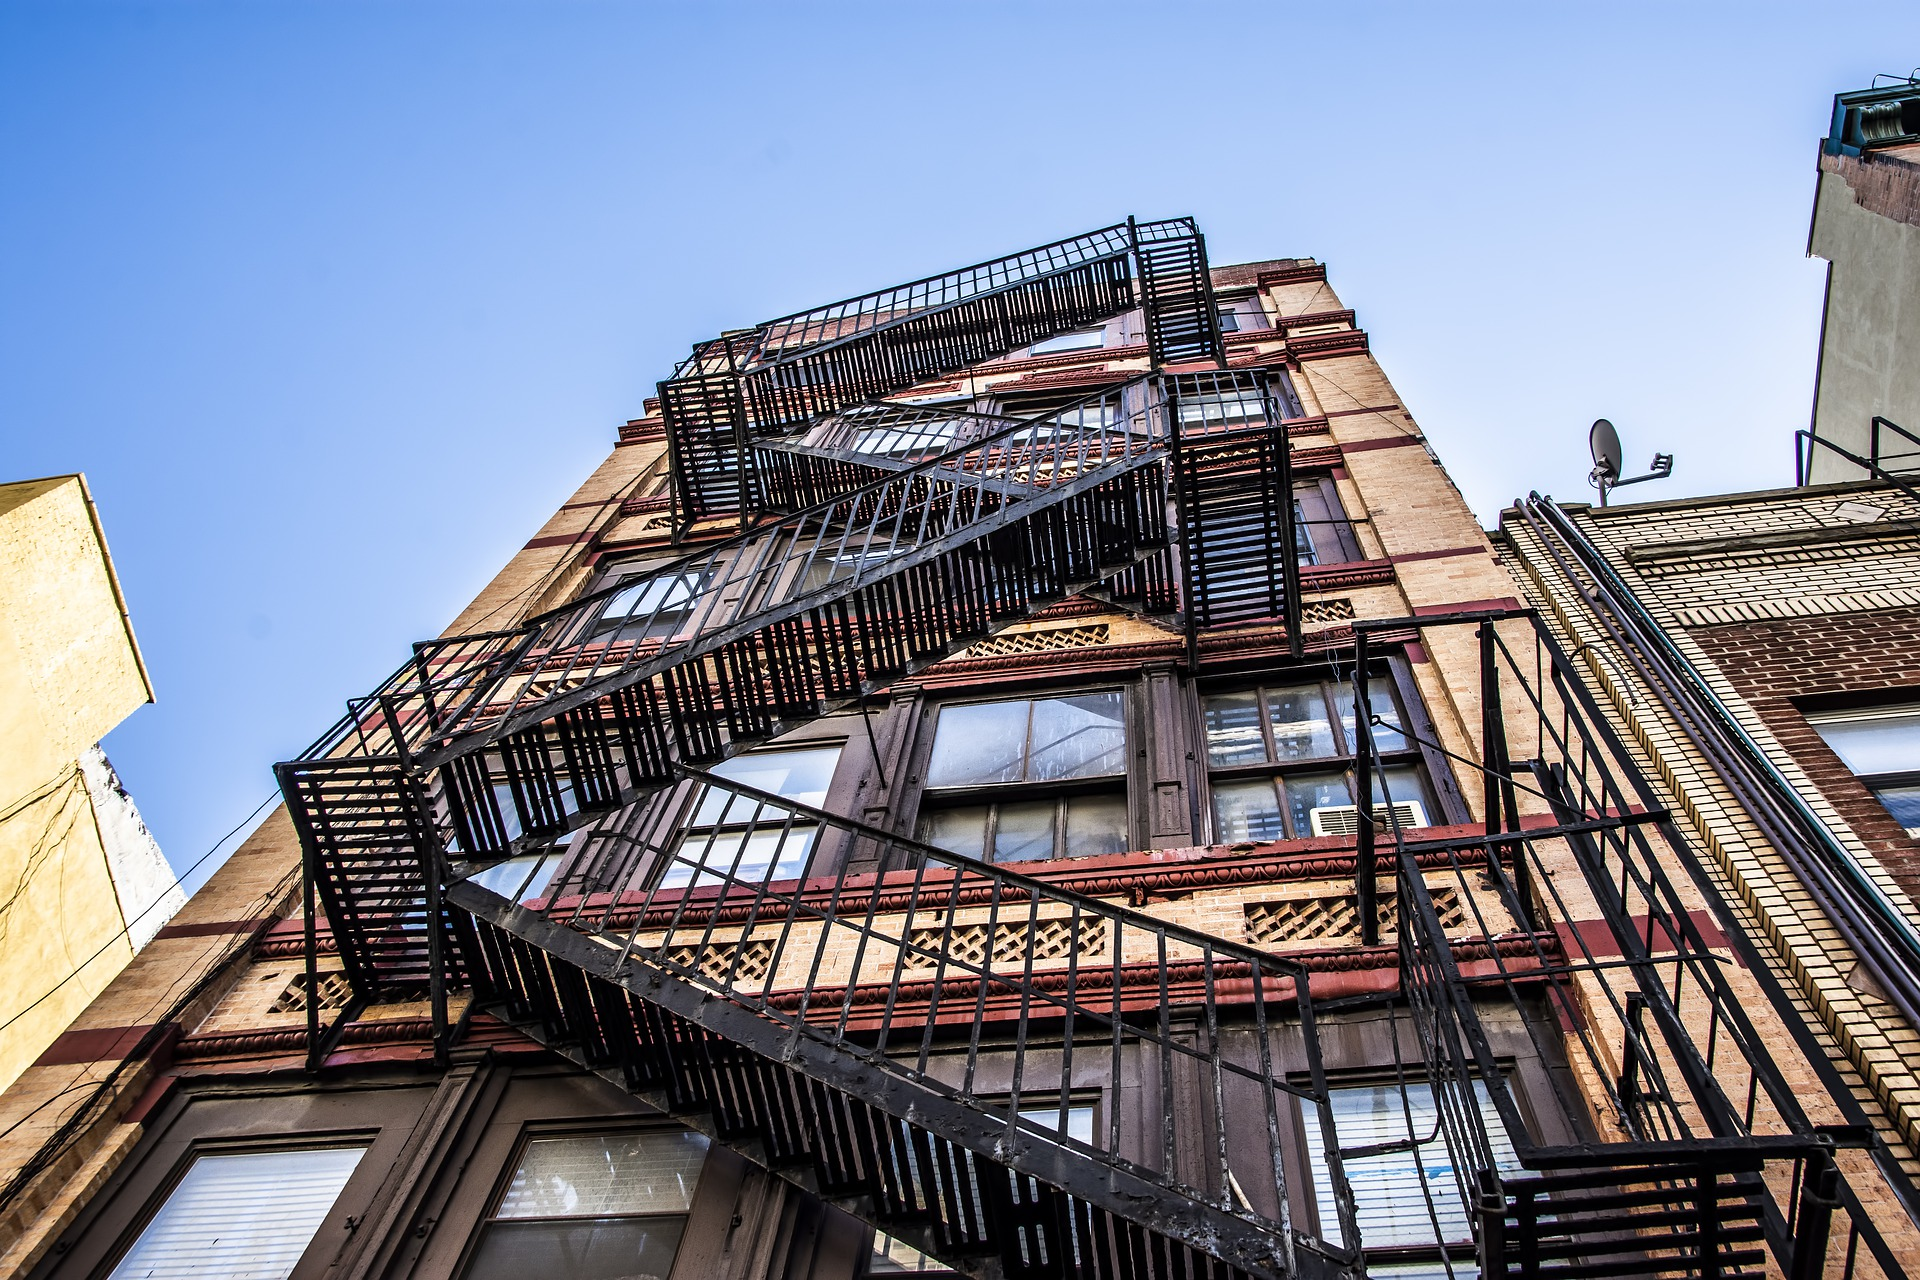 The fire escape on an apartment building